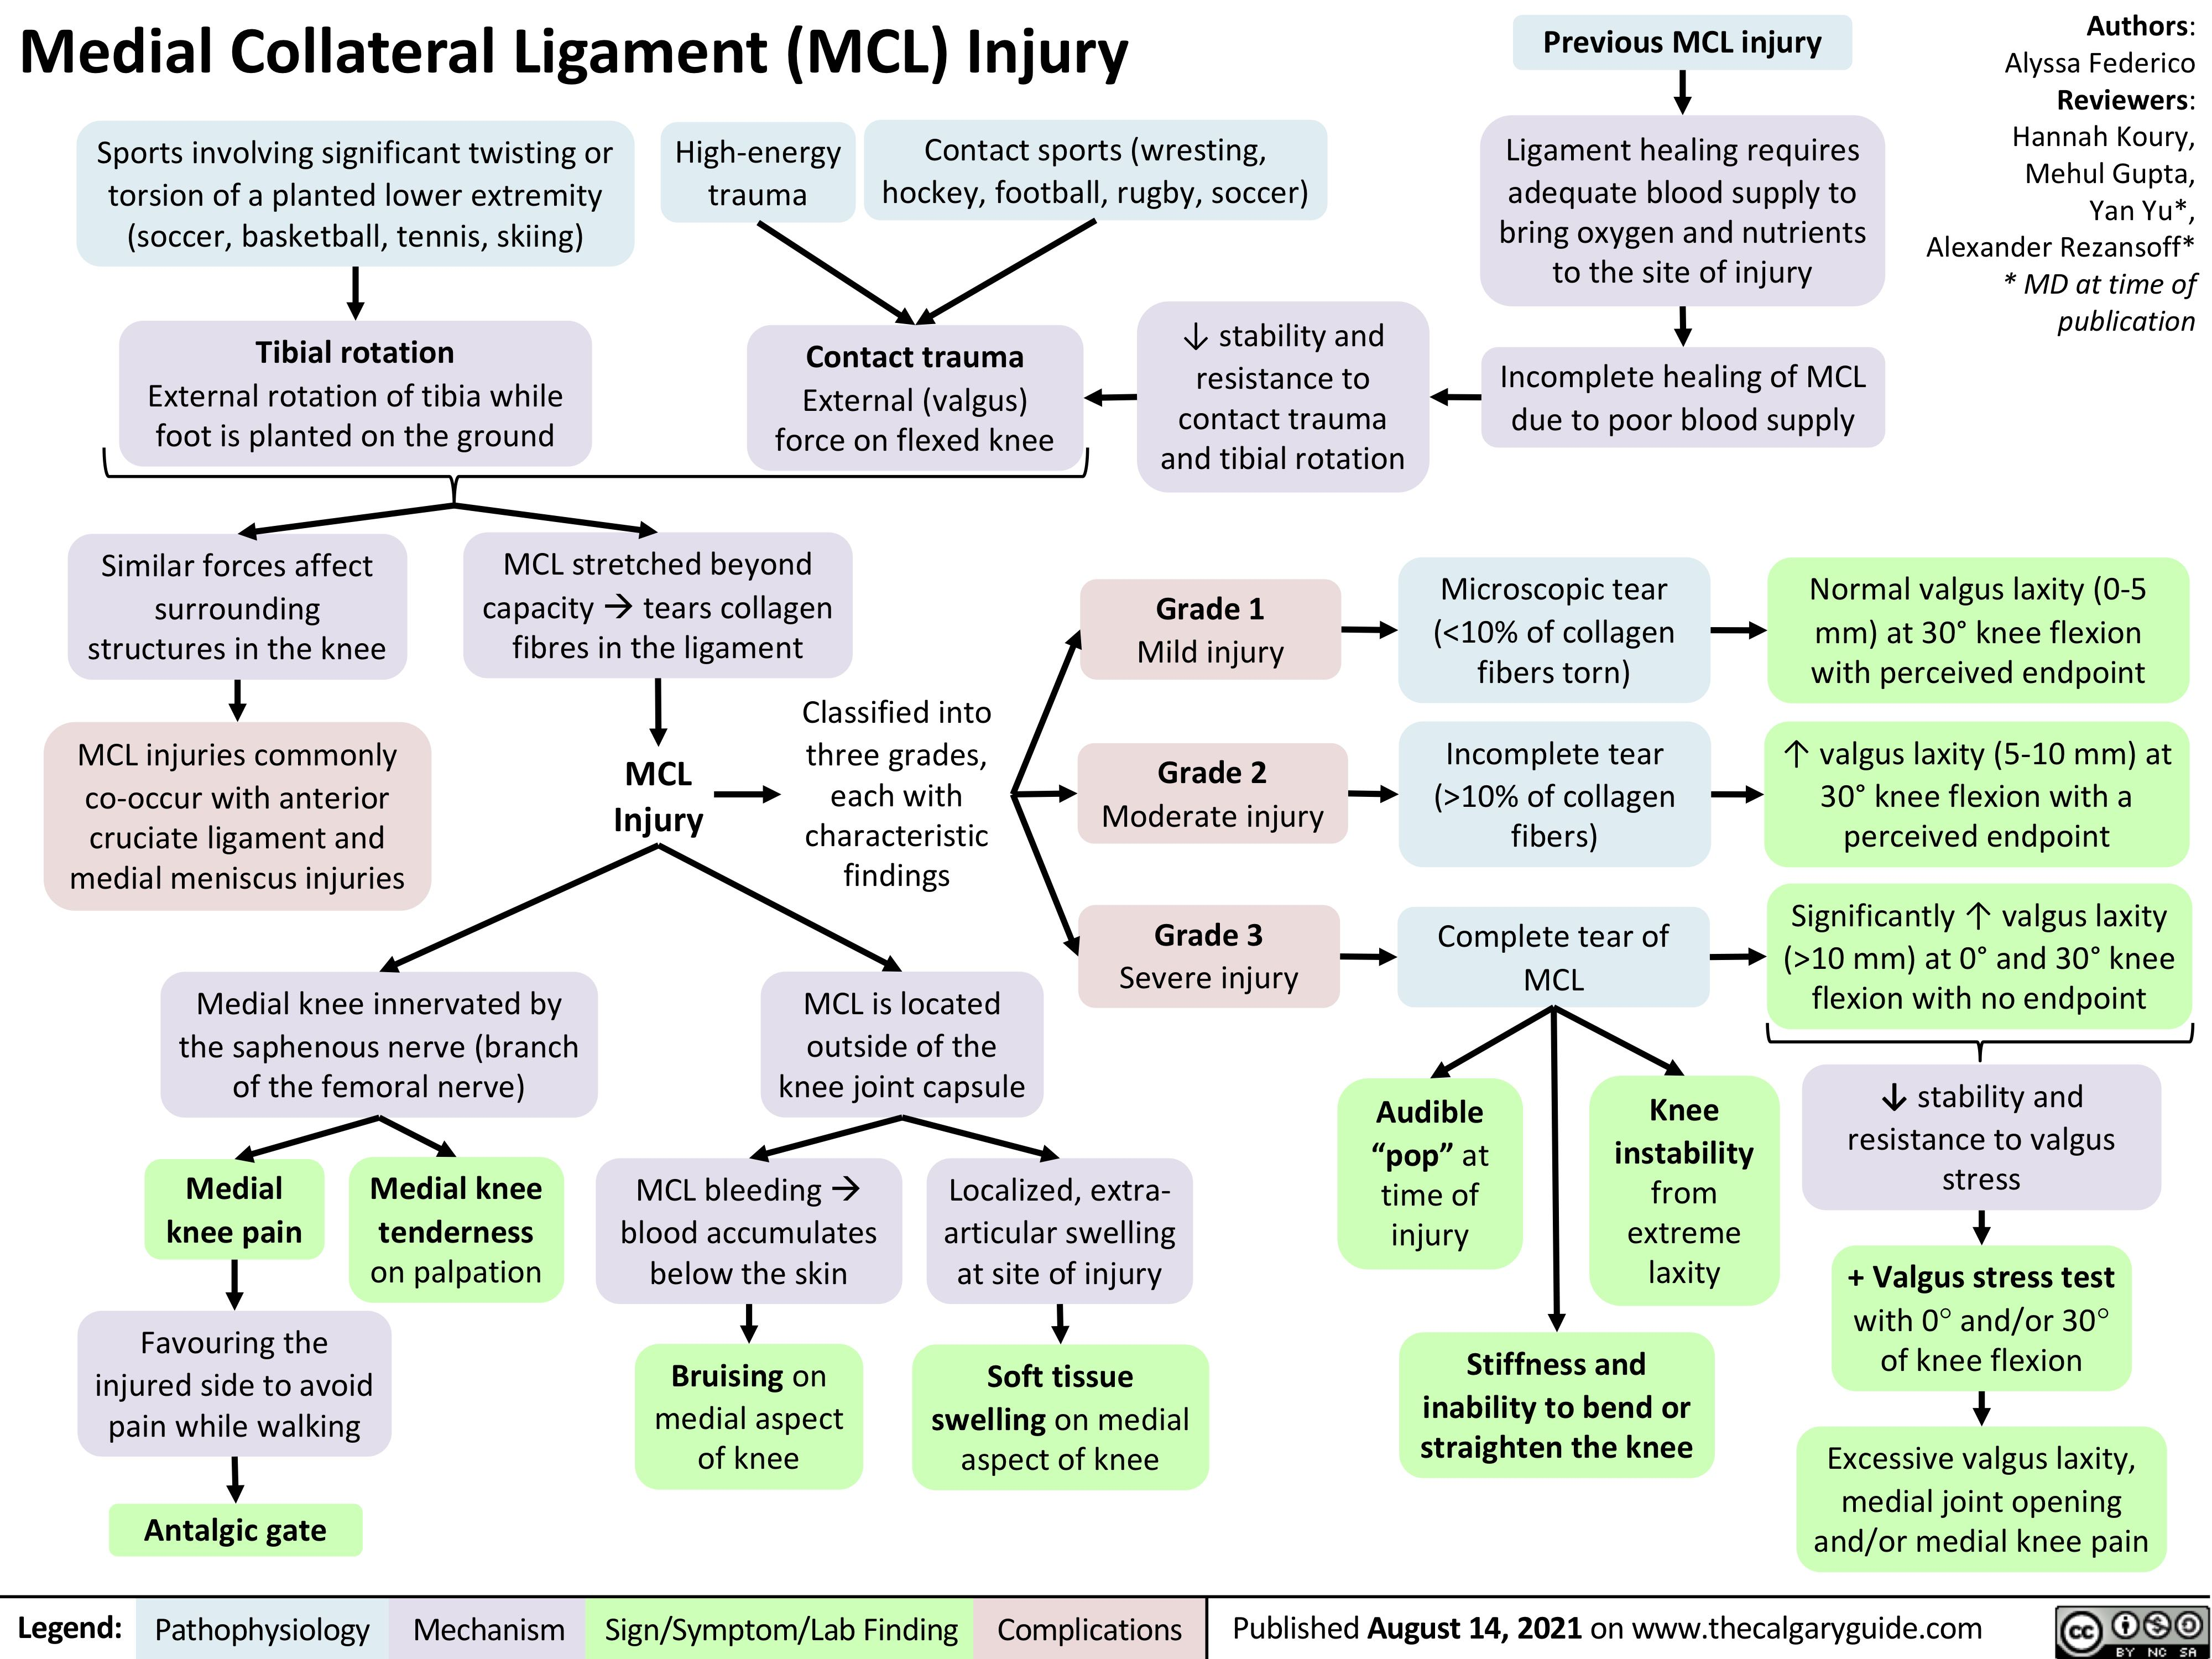 medial-collateral-ligament-mcl-injury